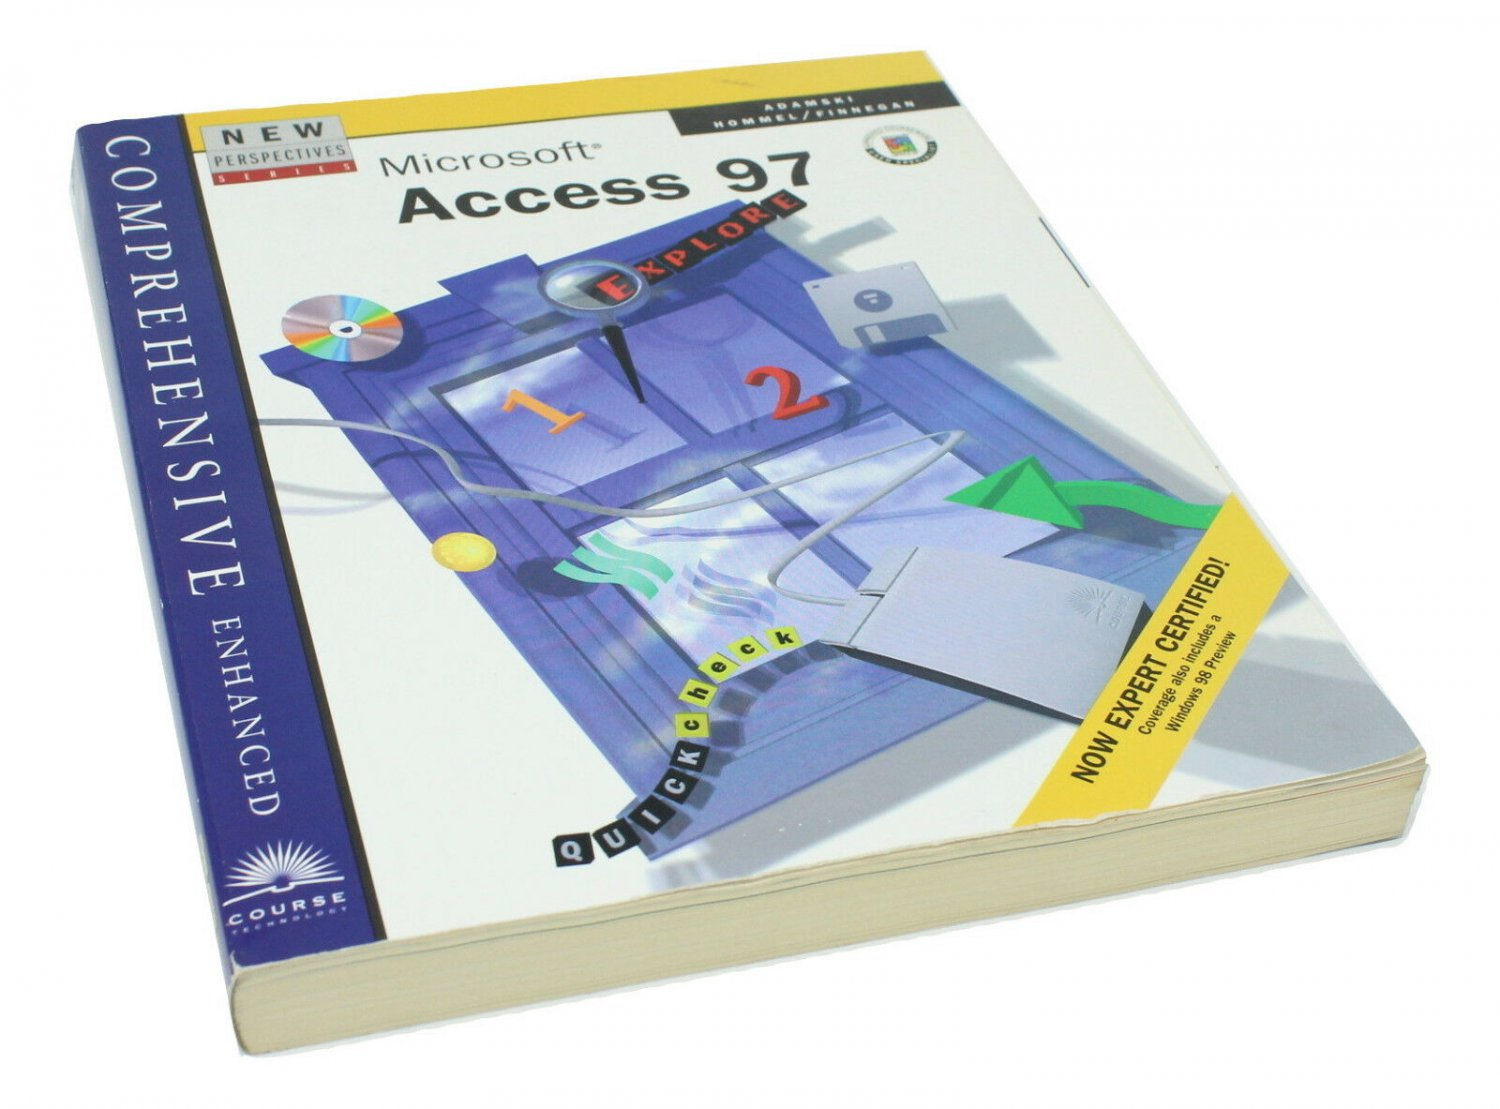 New Perspectives Series Microsoft Access 97 Comprehensive Enhanced Course Techno